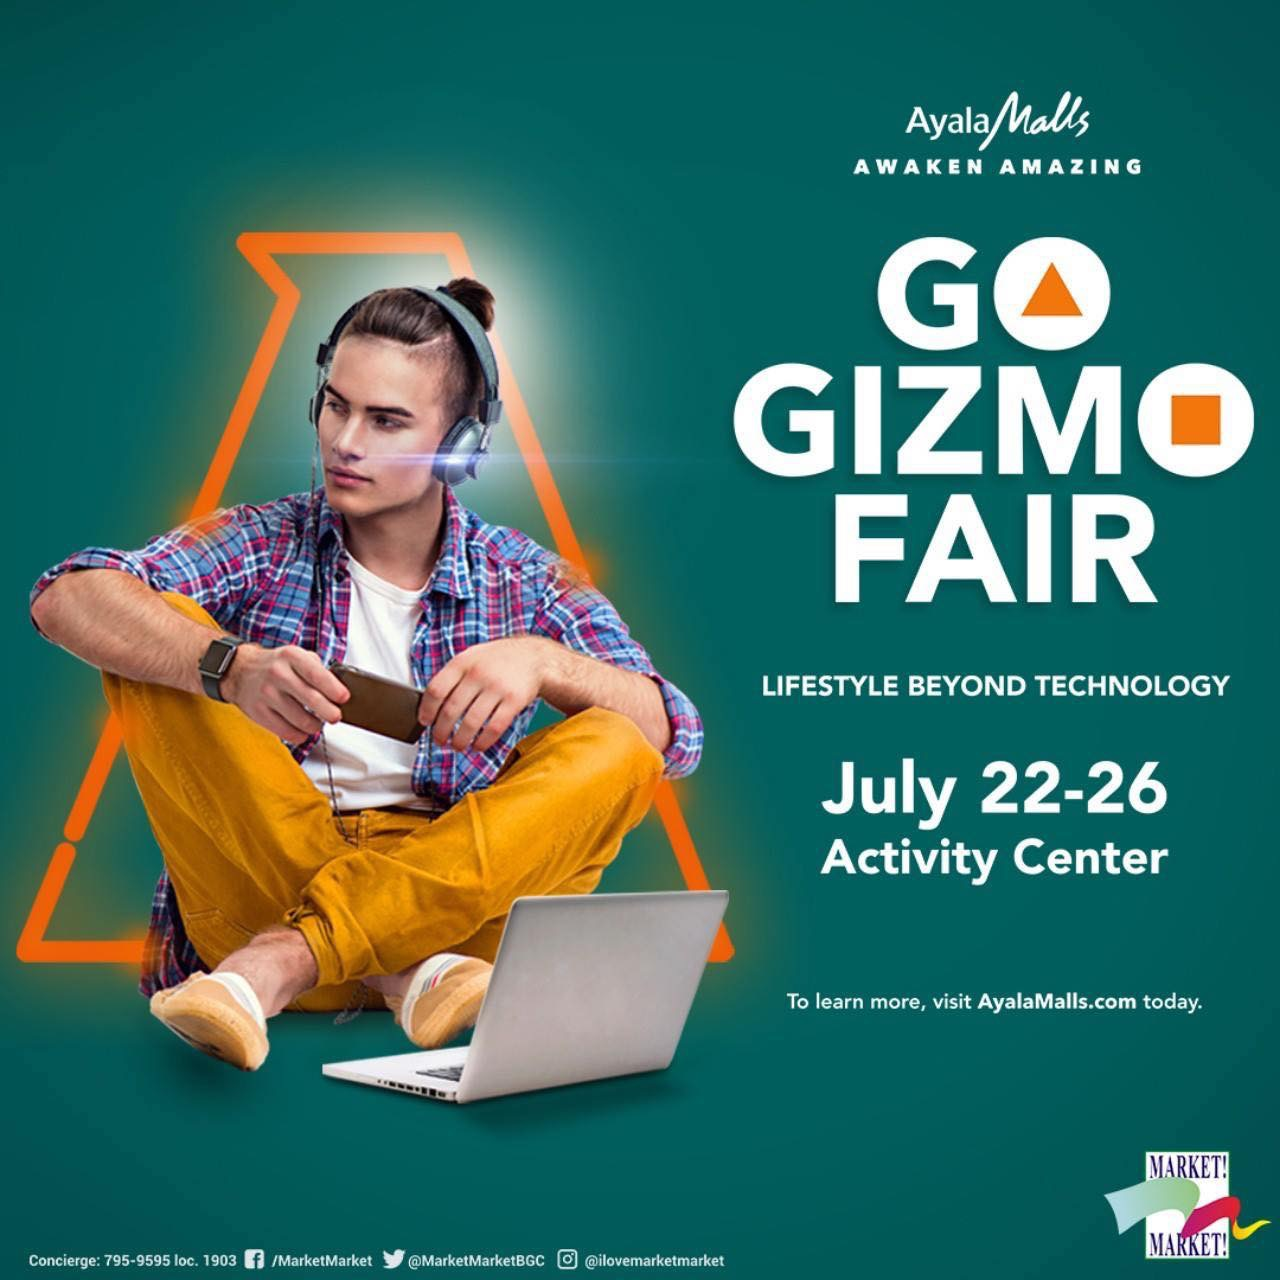 Go Gizmo Fair at Market! Market!